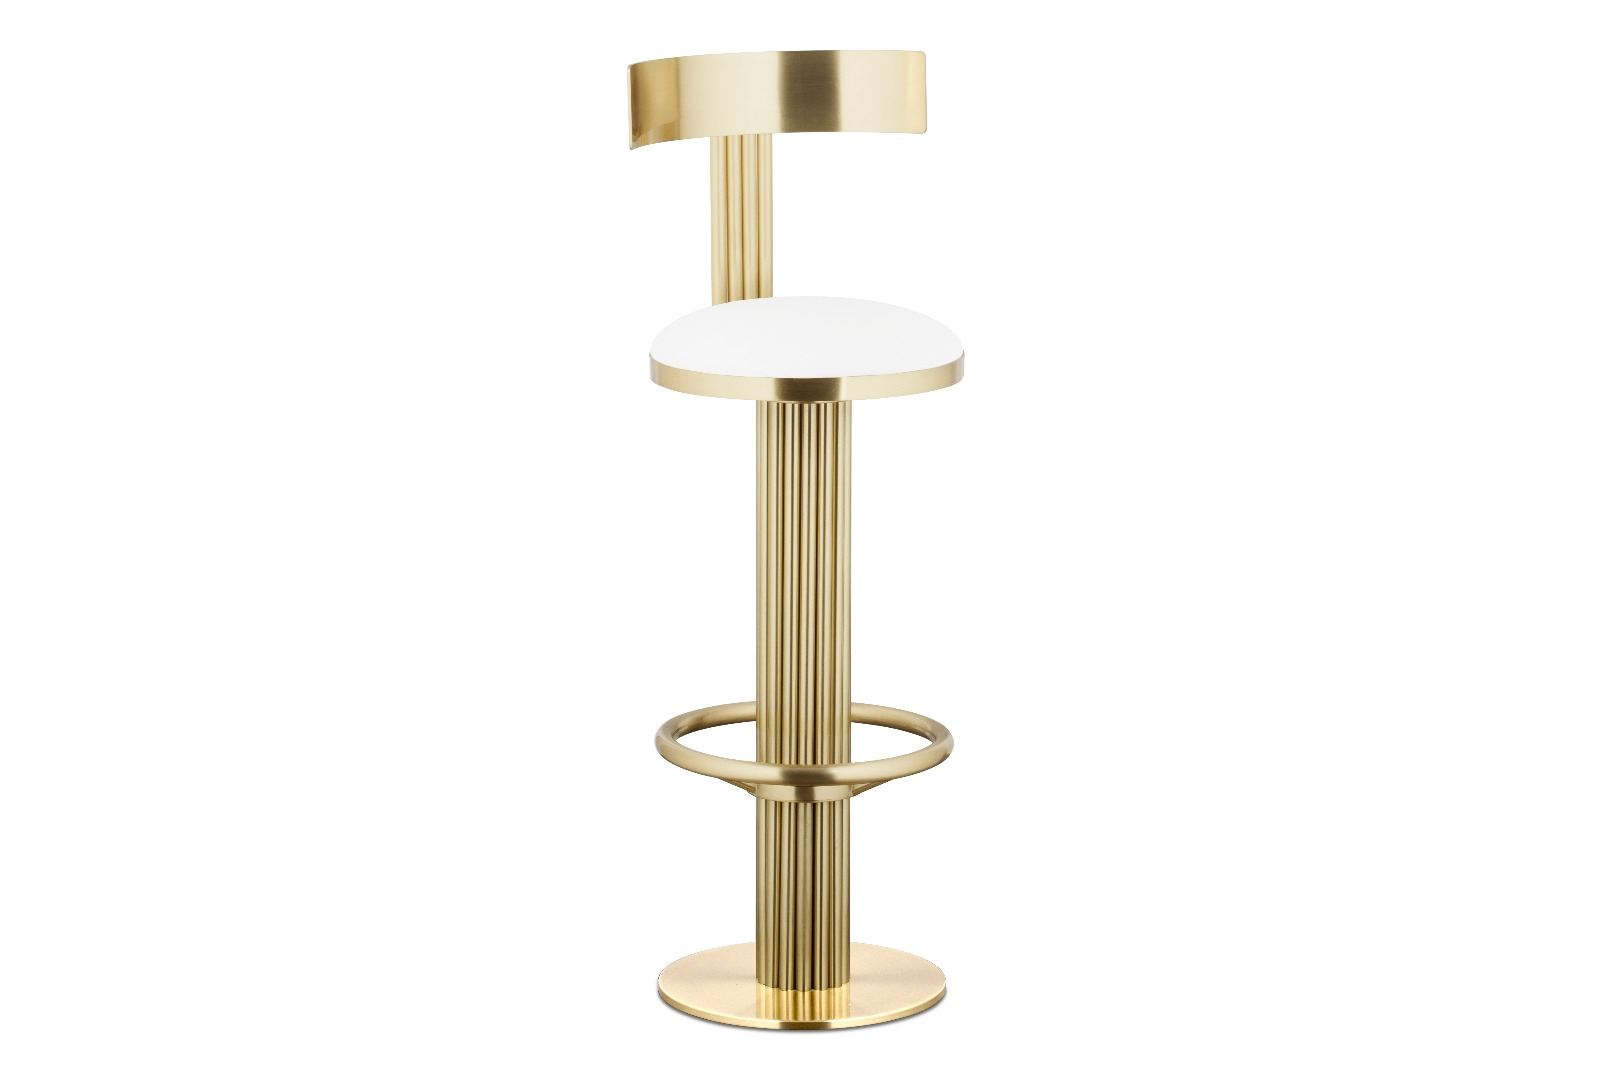 Find Here the Bar Stools with Gold Legs That'll Change Your Home Decor_10